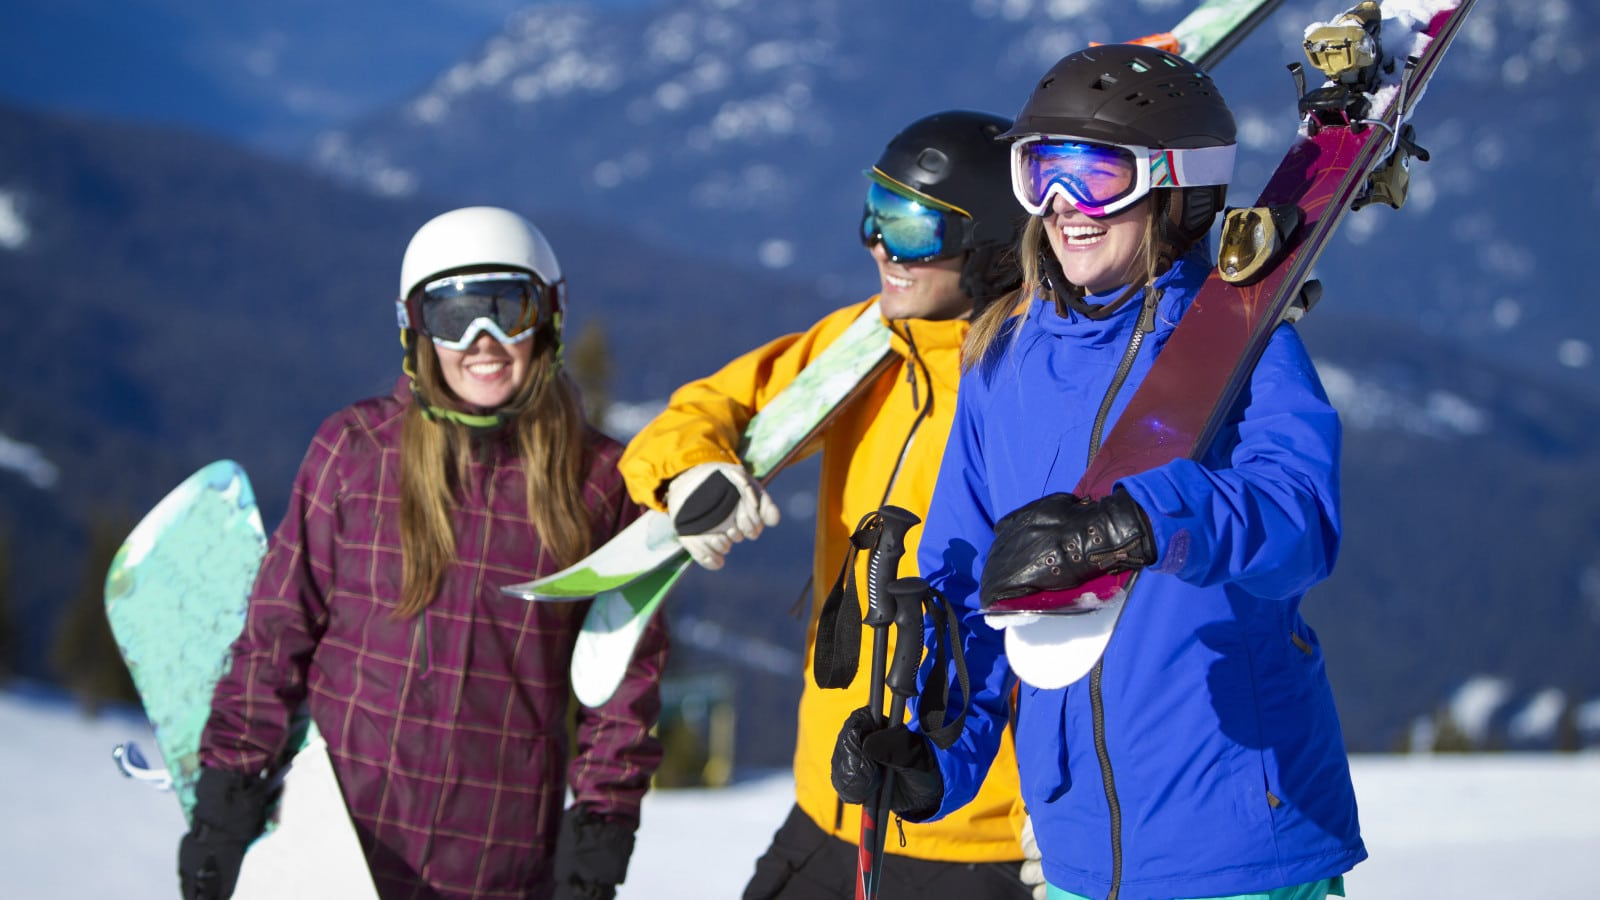 Skiers and Snowboarders Stock Photo